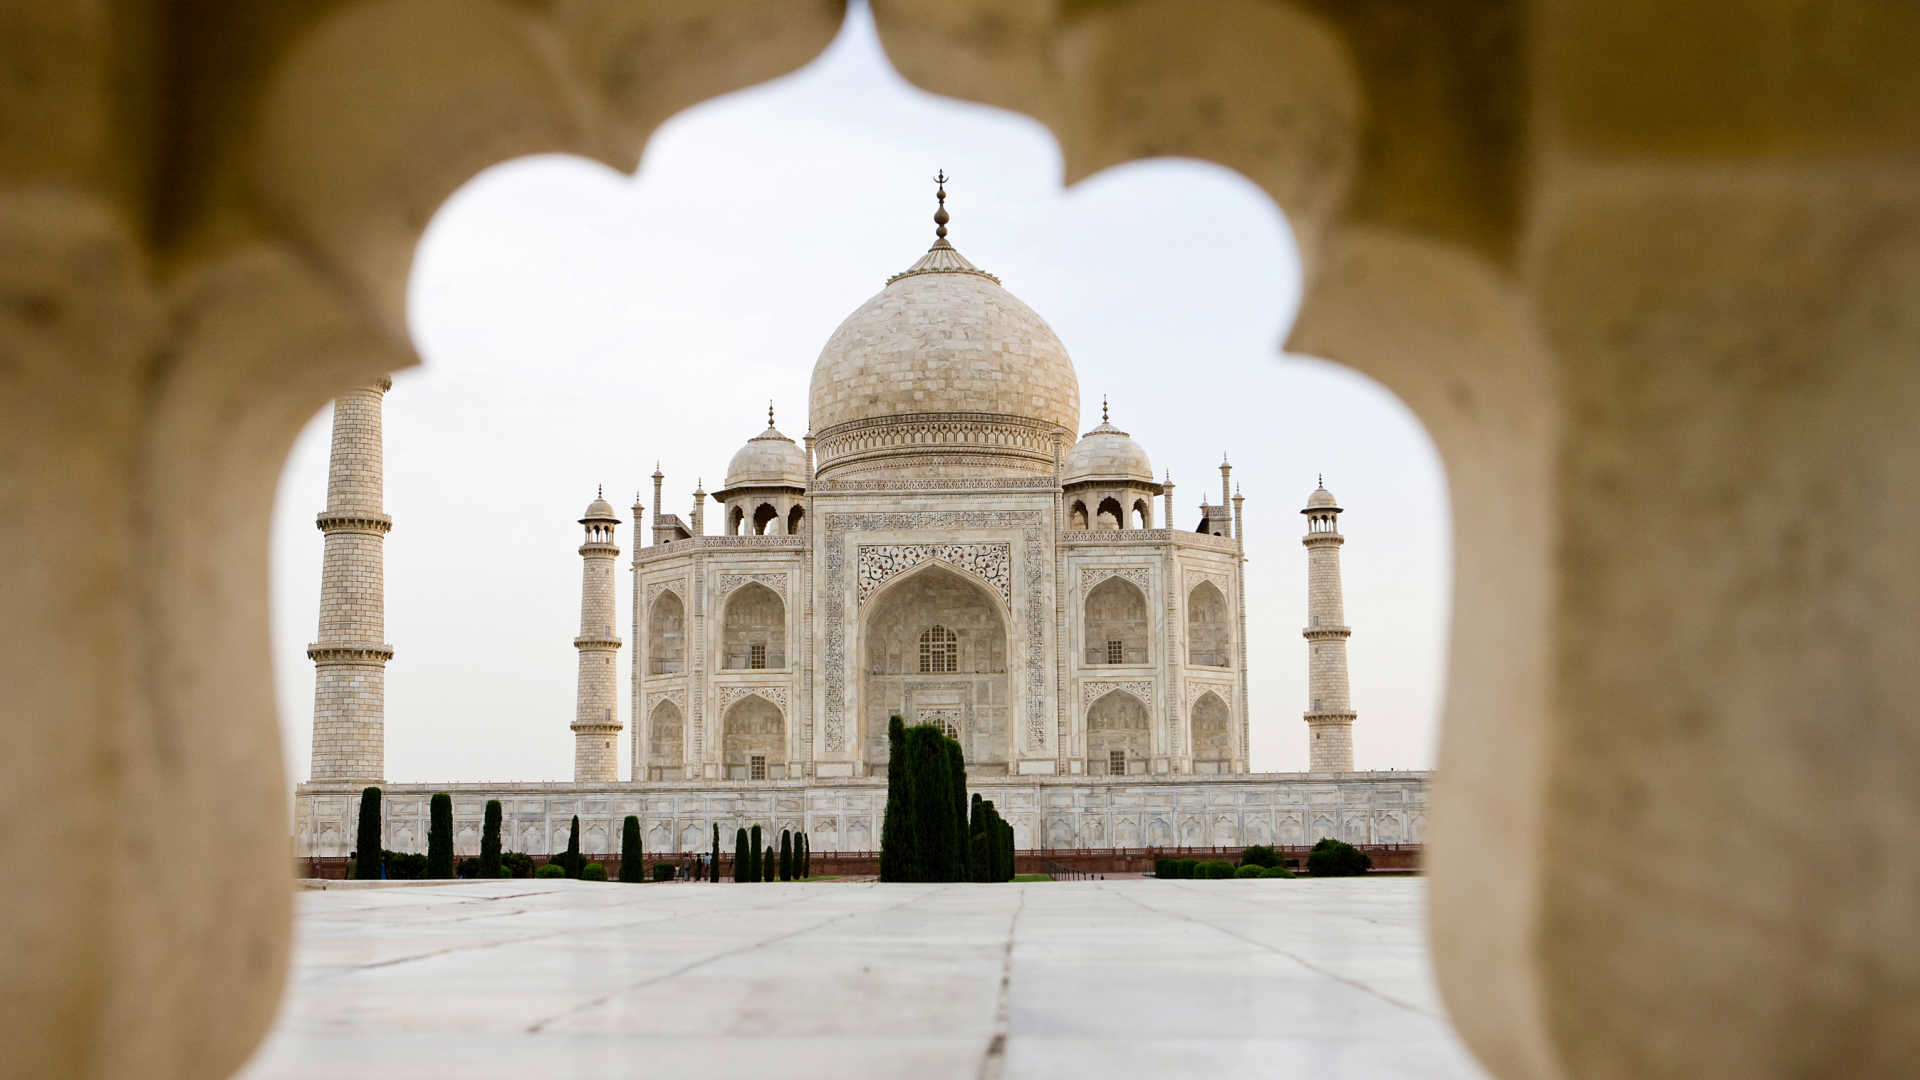 White Marble brought from Rajasthan was used to build the Taj Mahal